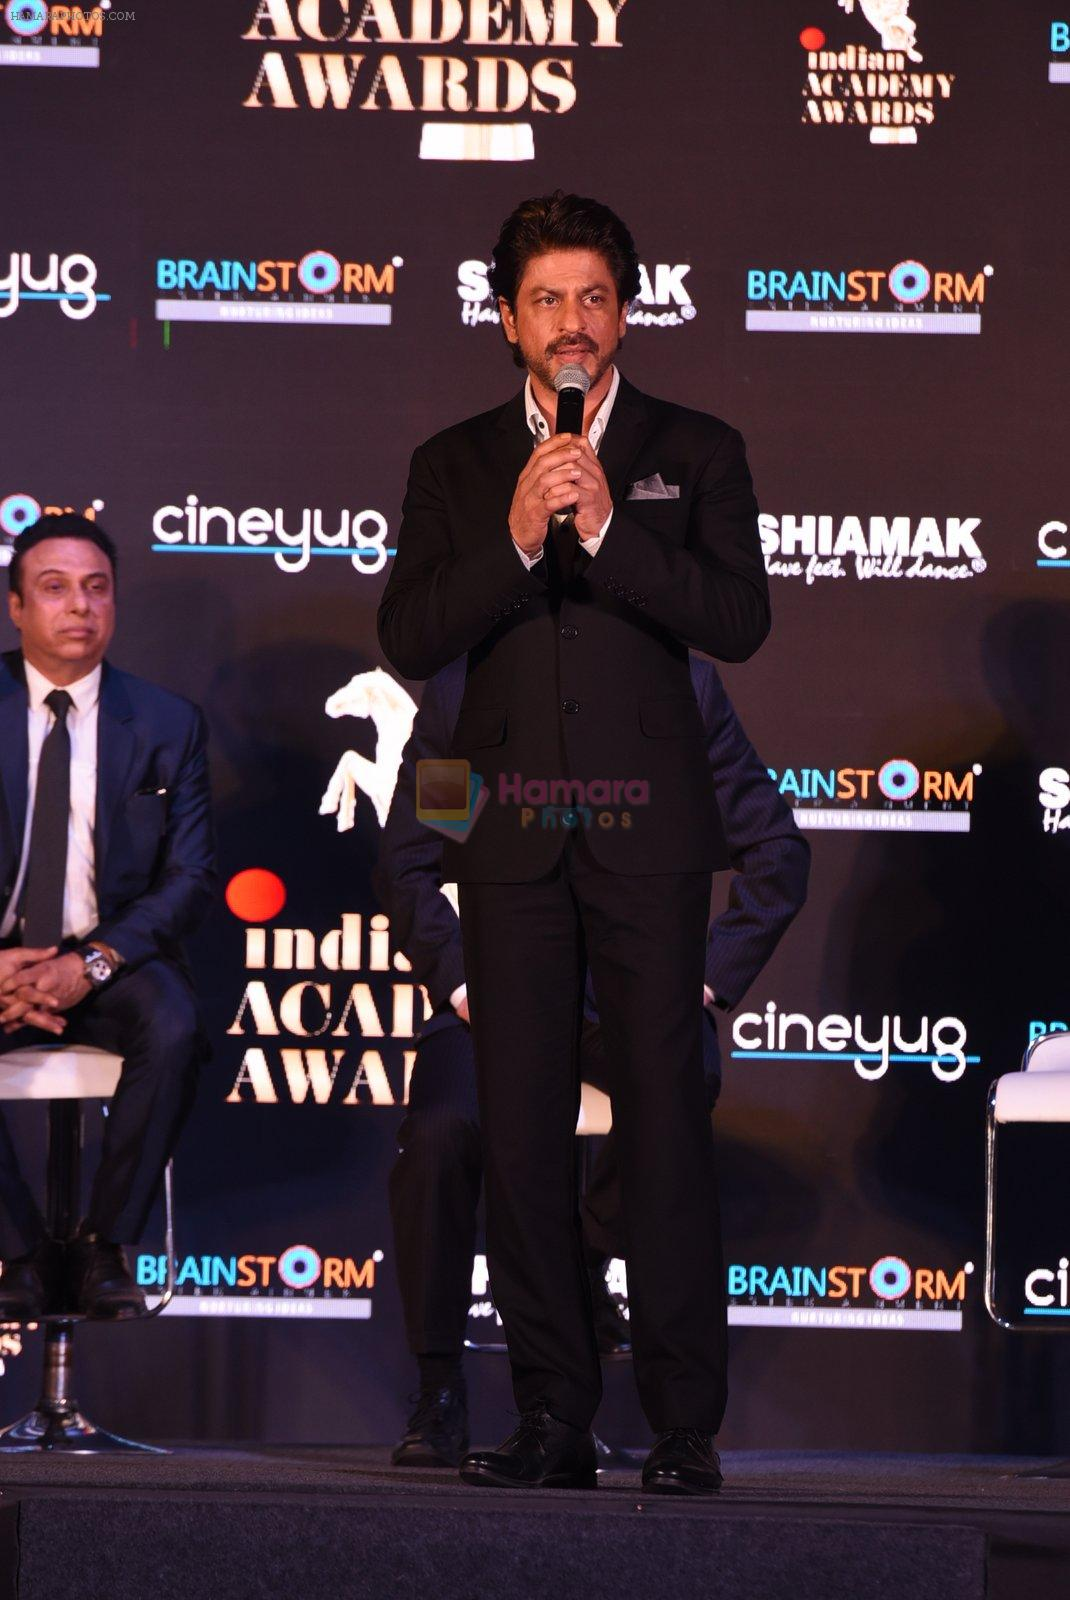 Shah Rukh Khan at a press meet to announce Indian Academy Awards on 21st Dec 2016